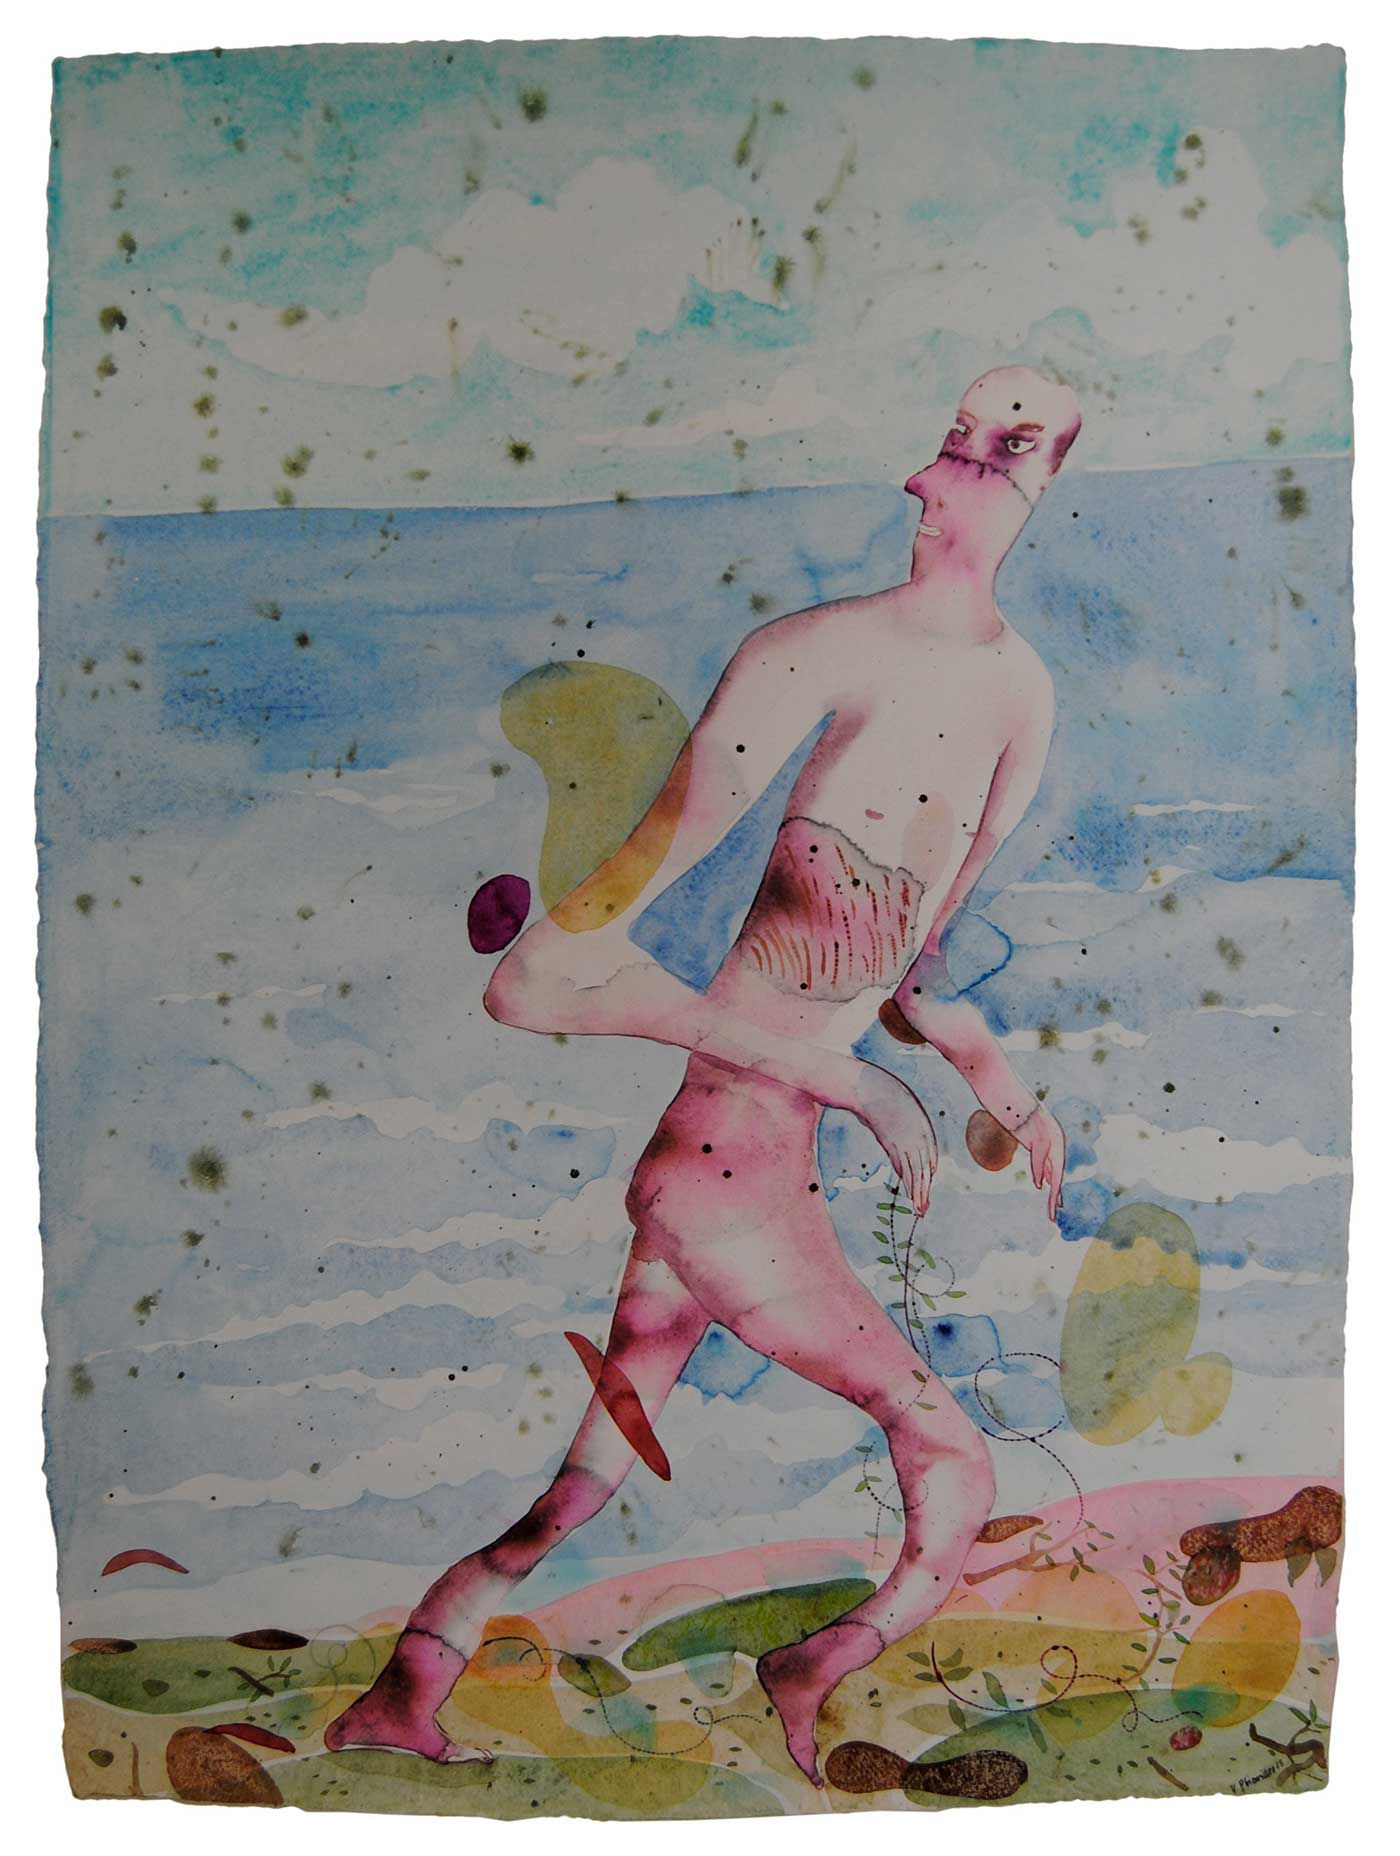 2015-serendipity-beach-water-color-on-paper-56x76cm